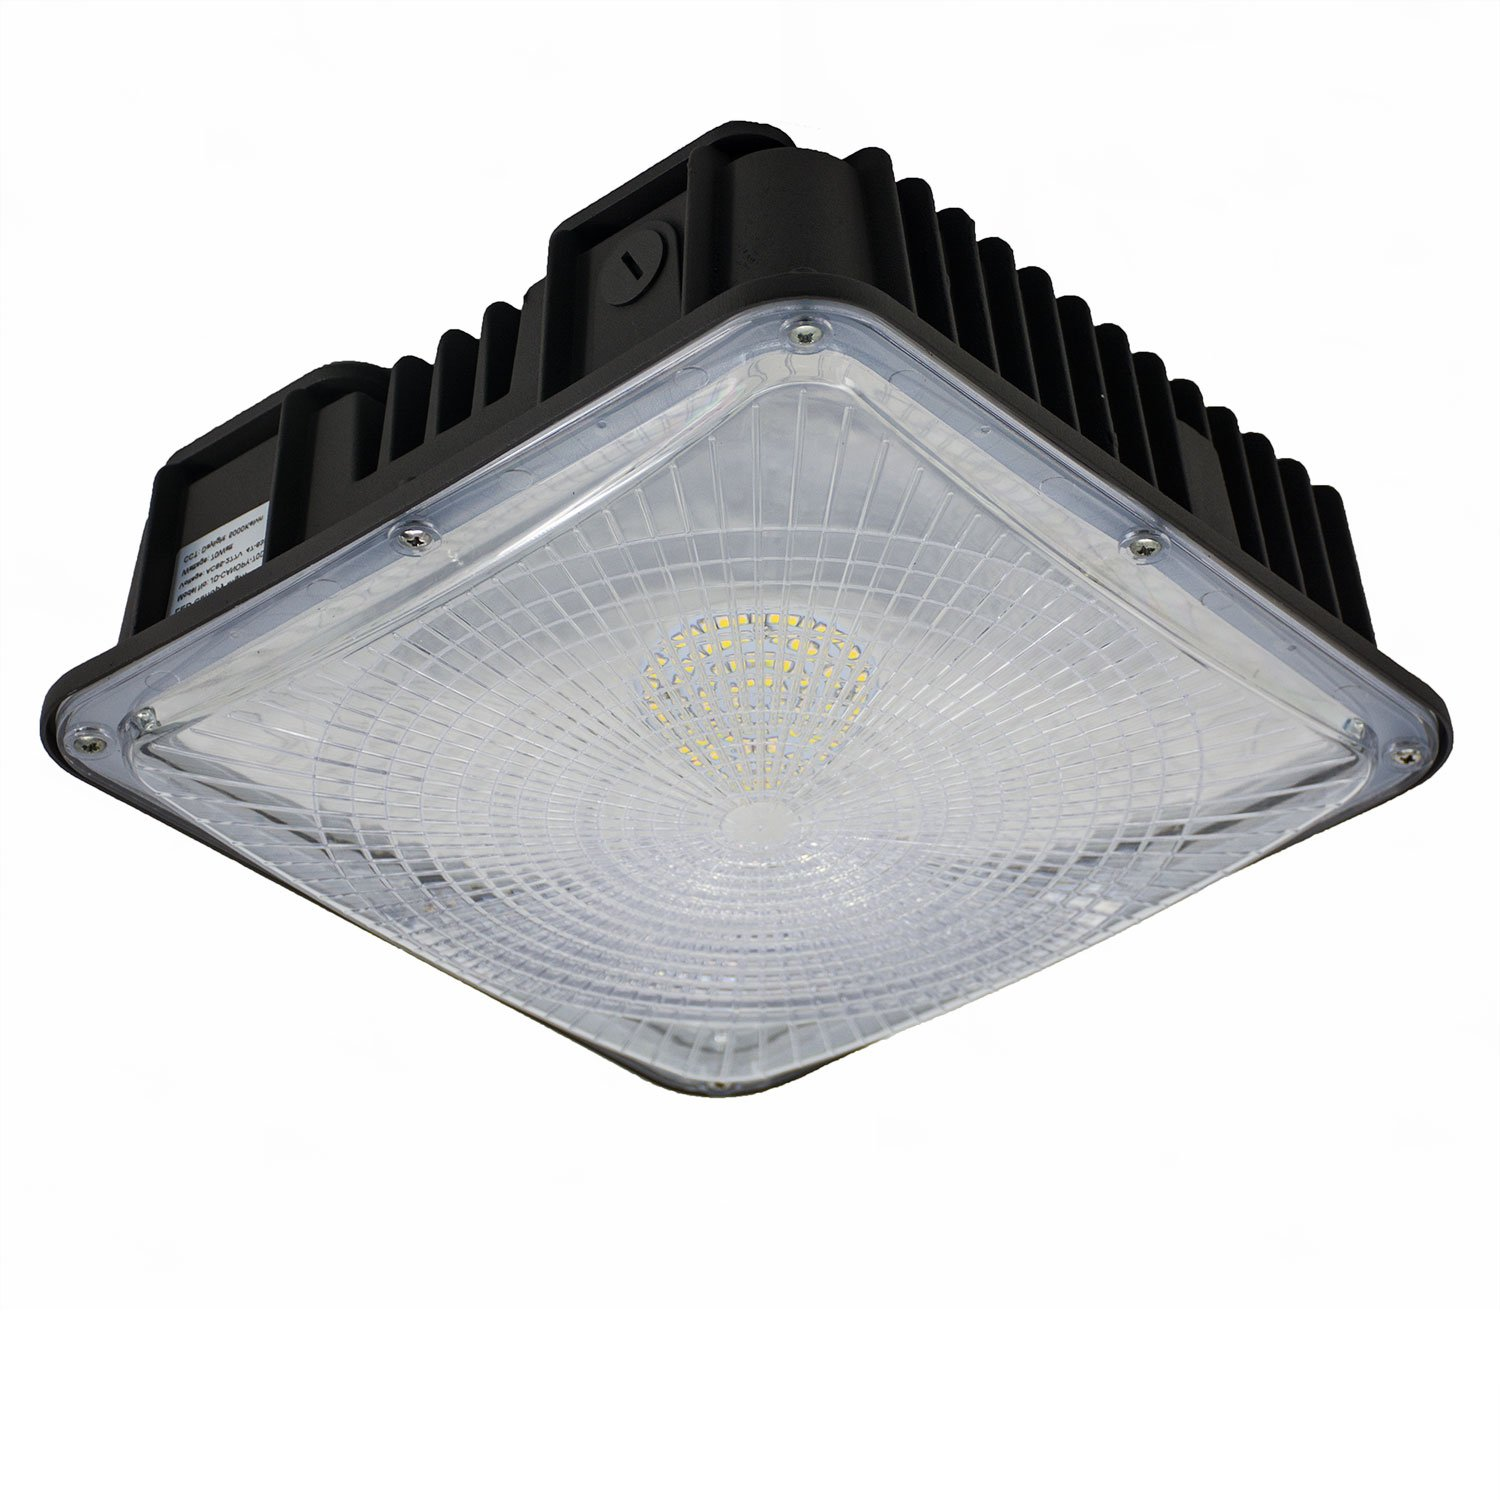 LED Canopy Lights for Gas Station, JESLED Outdoor Waterproof LED Canopy Lighting Fixture, 45W/50W 5000K Daylight White 6000LM (150W-250W HID/MH Replacement), Warehouse Garage Workshop Ceiling Lamp